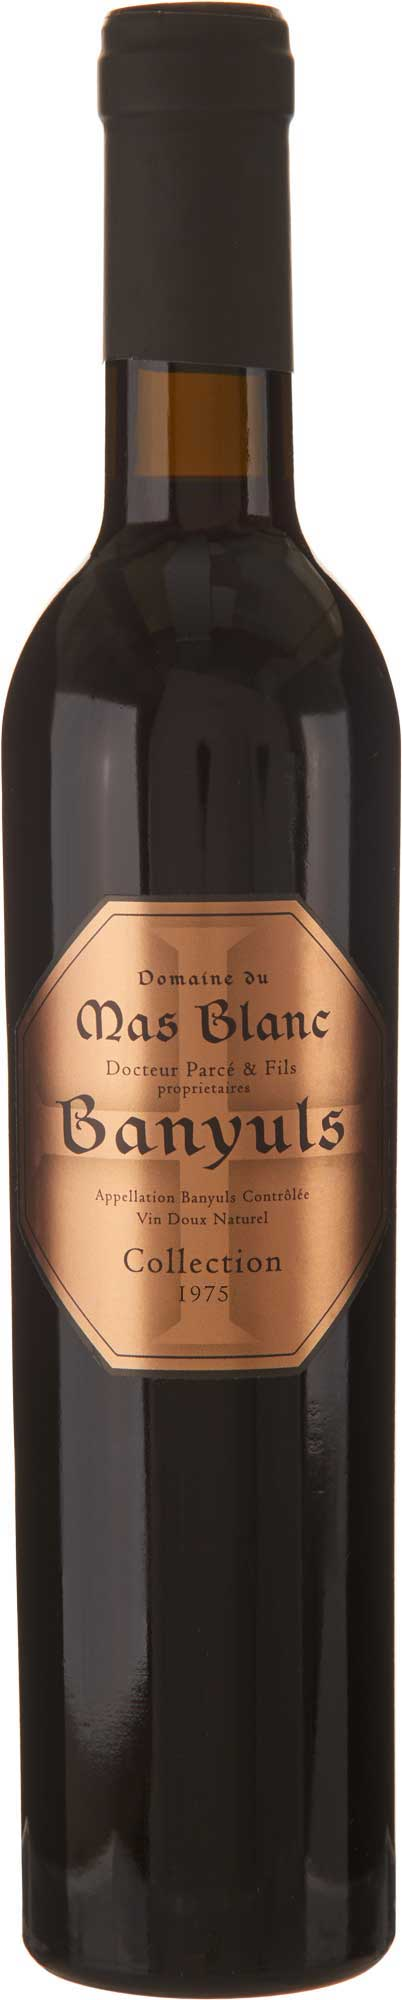 "Domaine du Mas Blanc Banyuls ""Collection"" 1975"